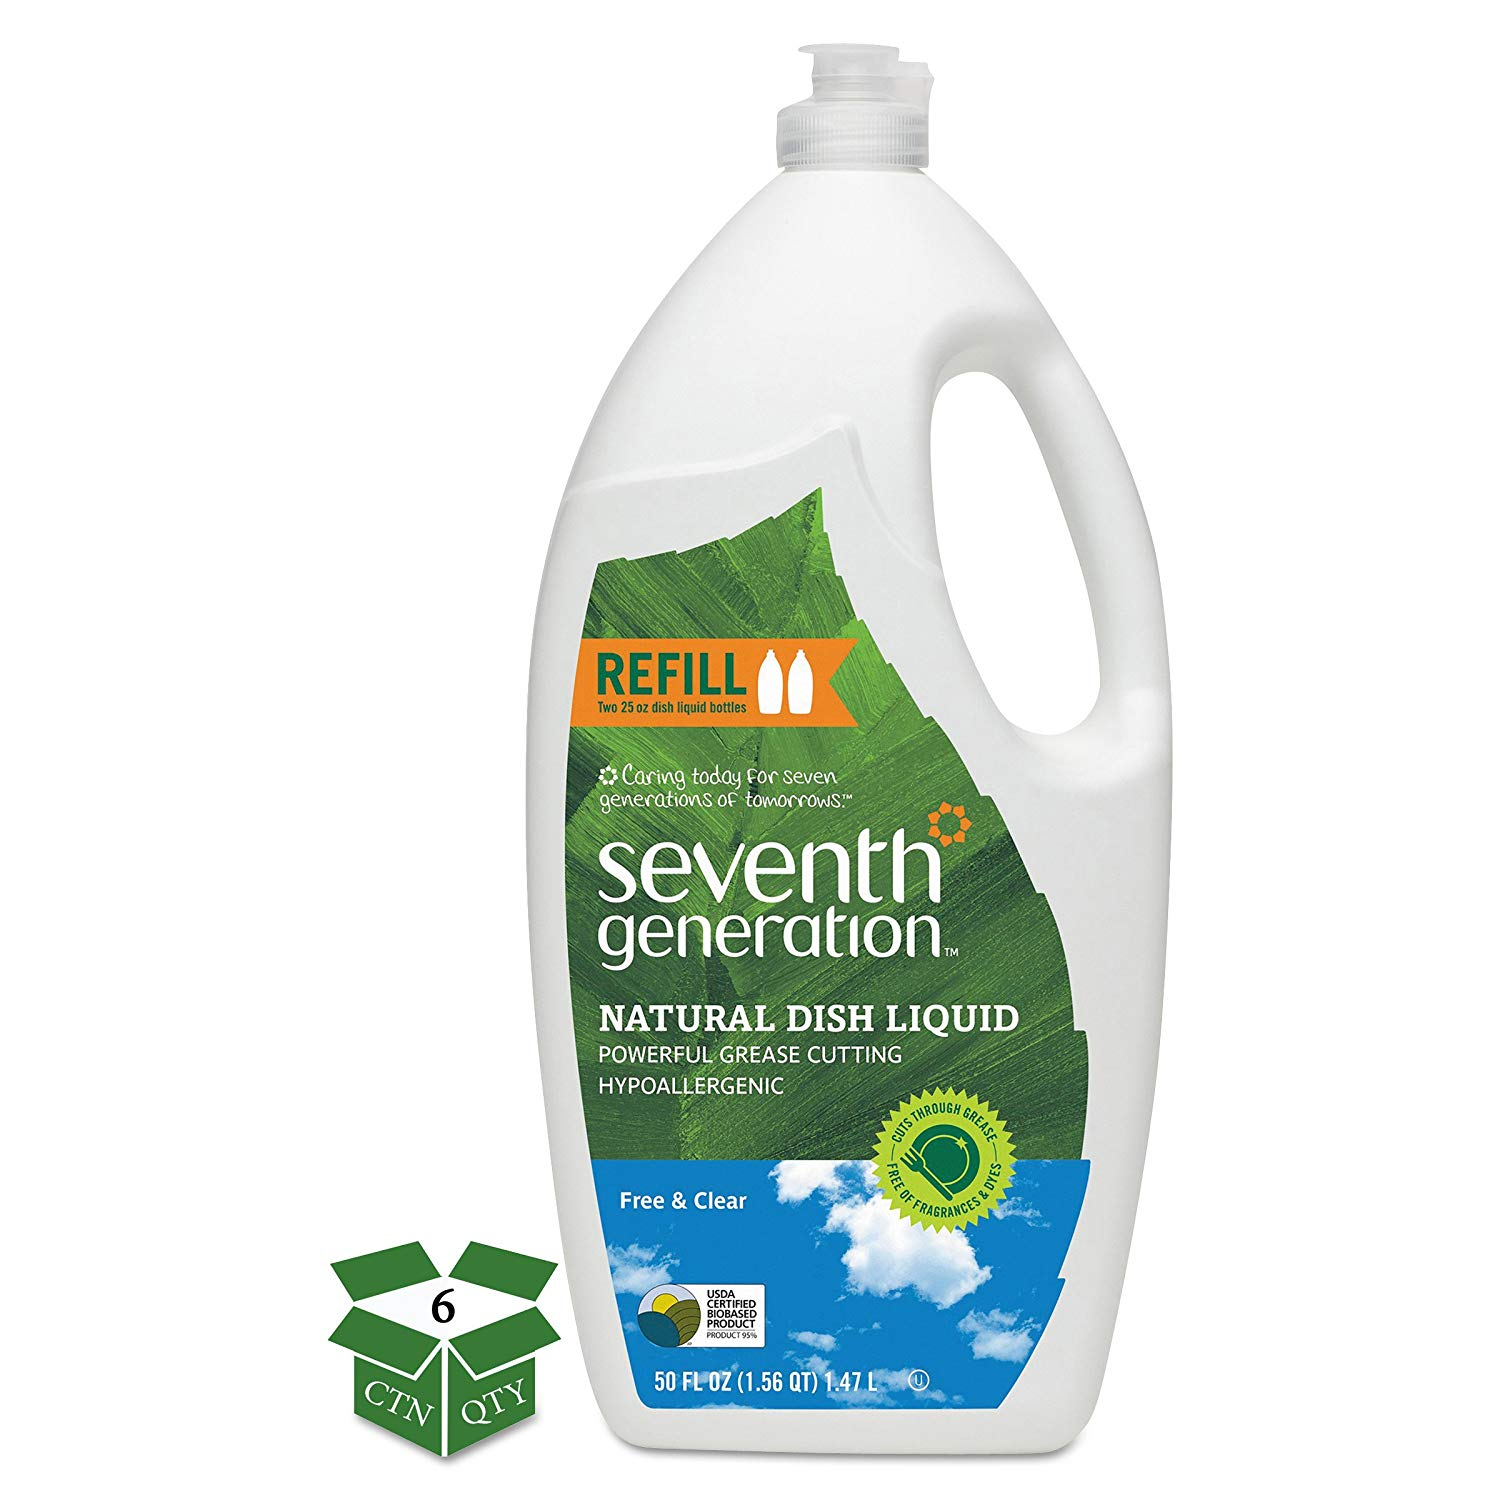 HSH/DISH LIQUID FREE & CLEAR SEVENTH 6/50 OZ